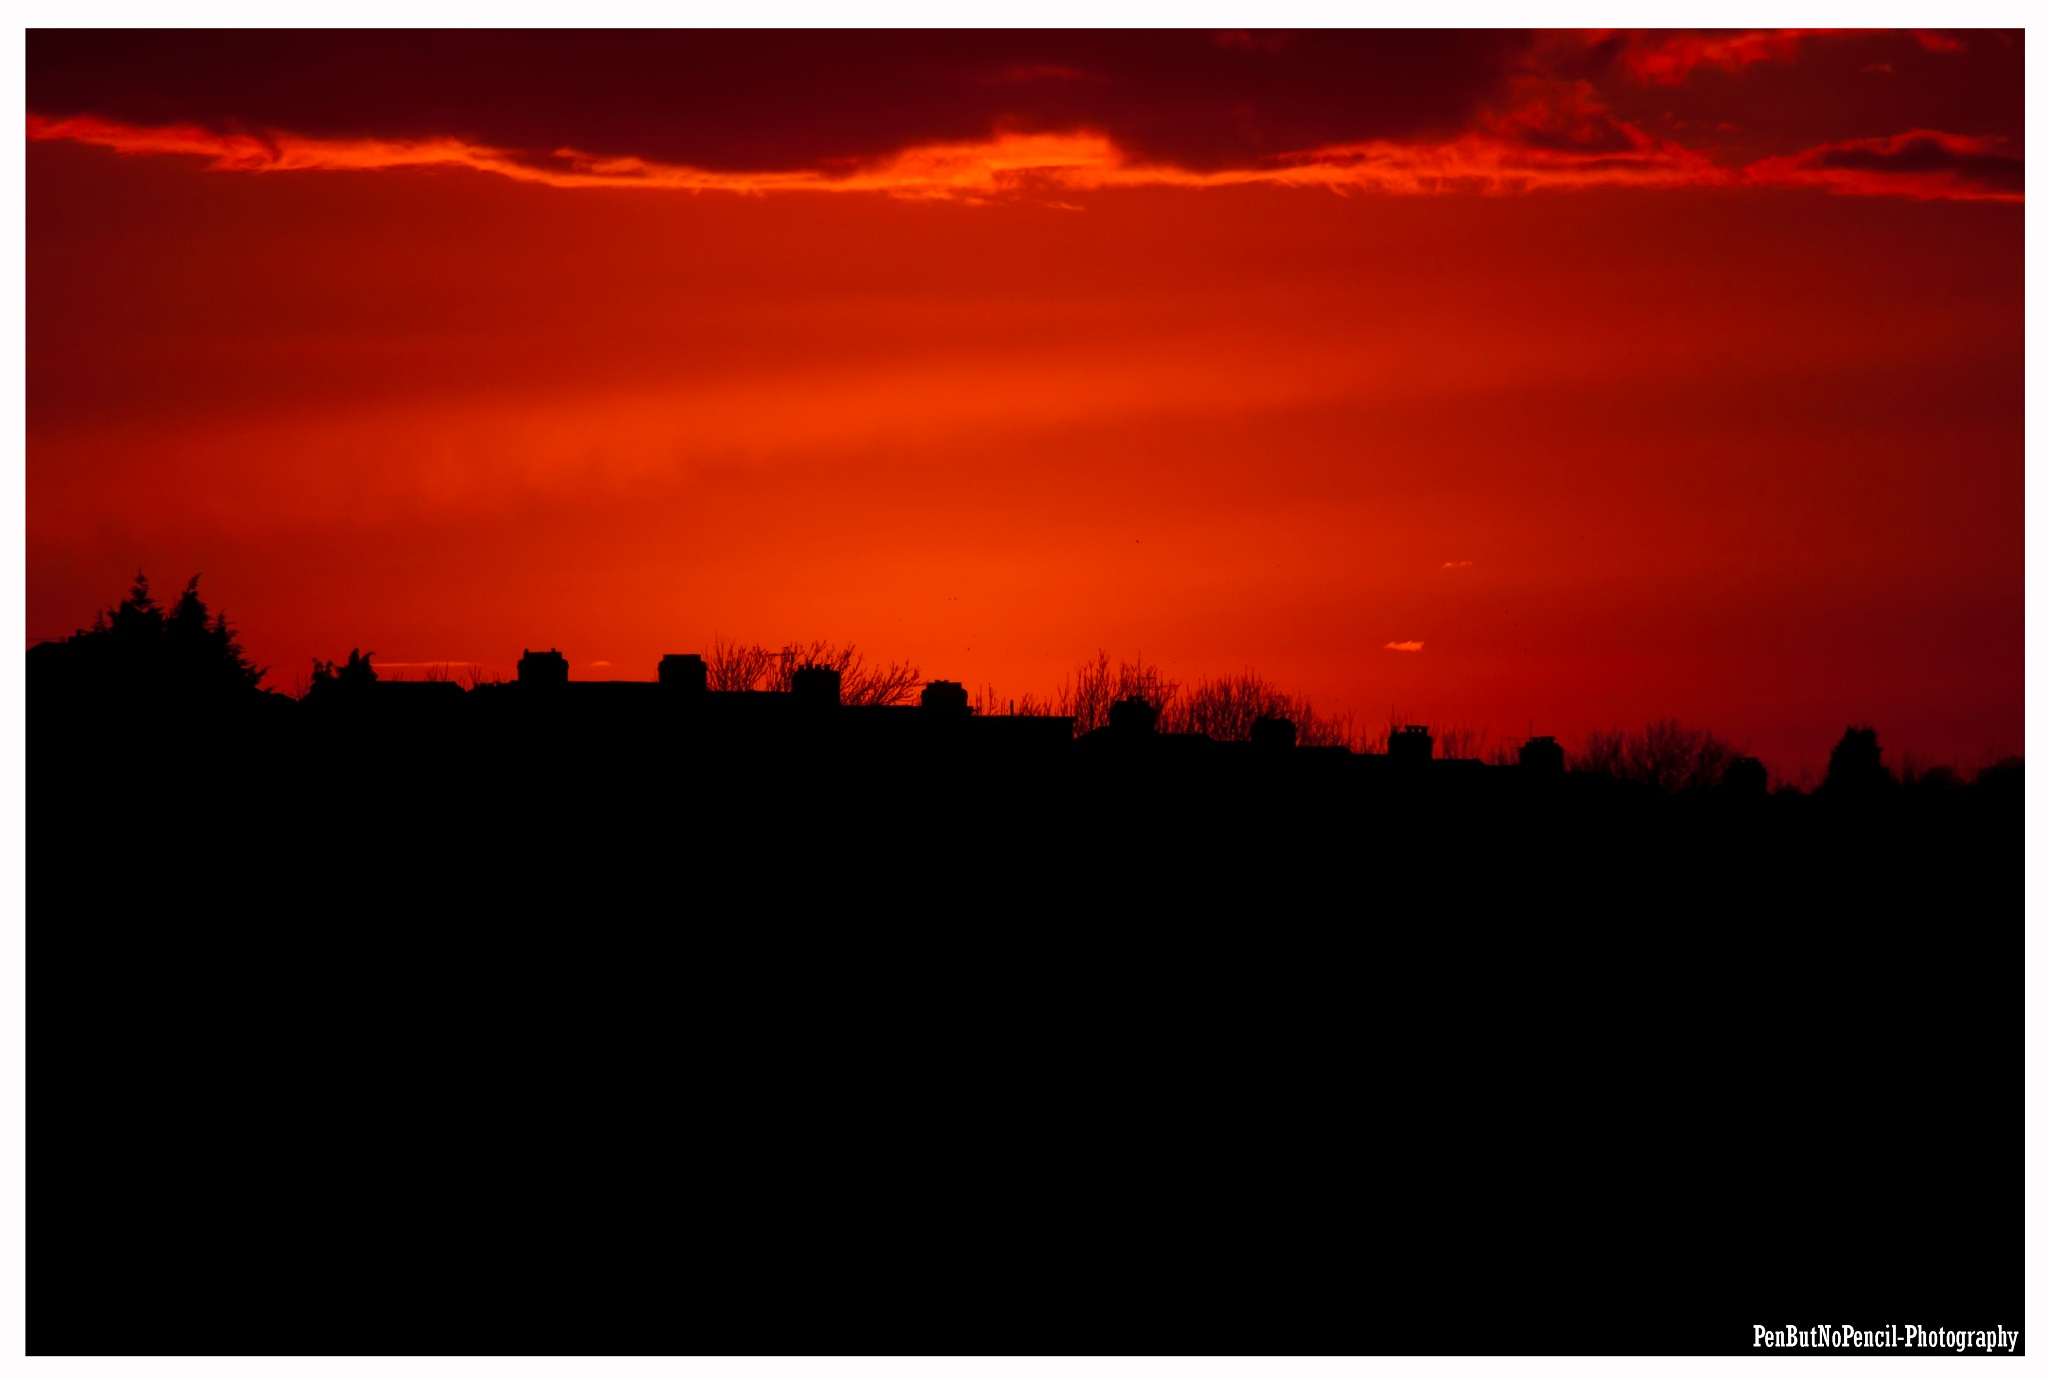 'Blood Sunset' by Trev